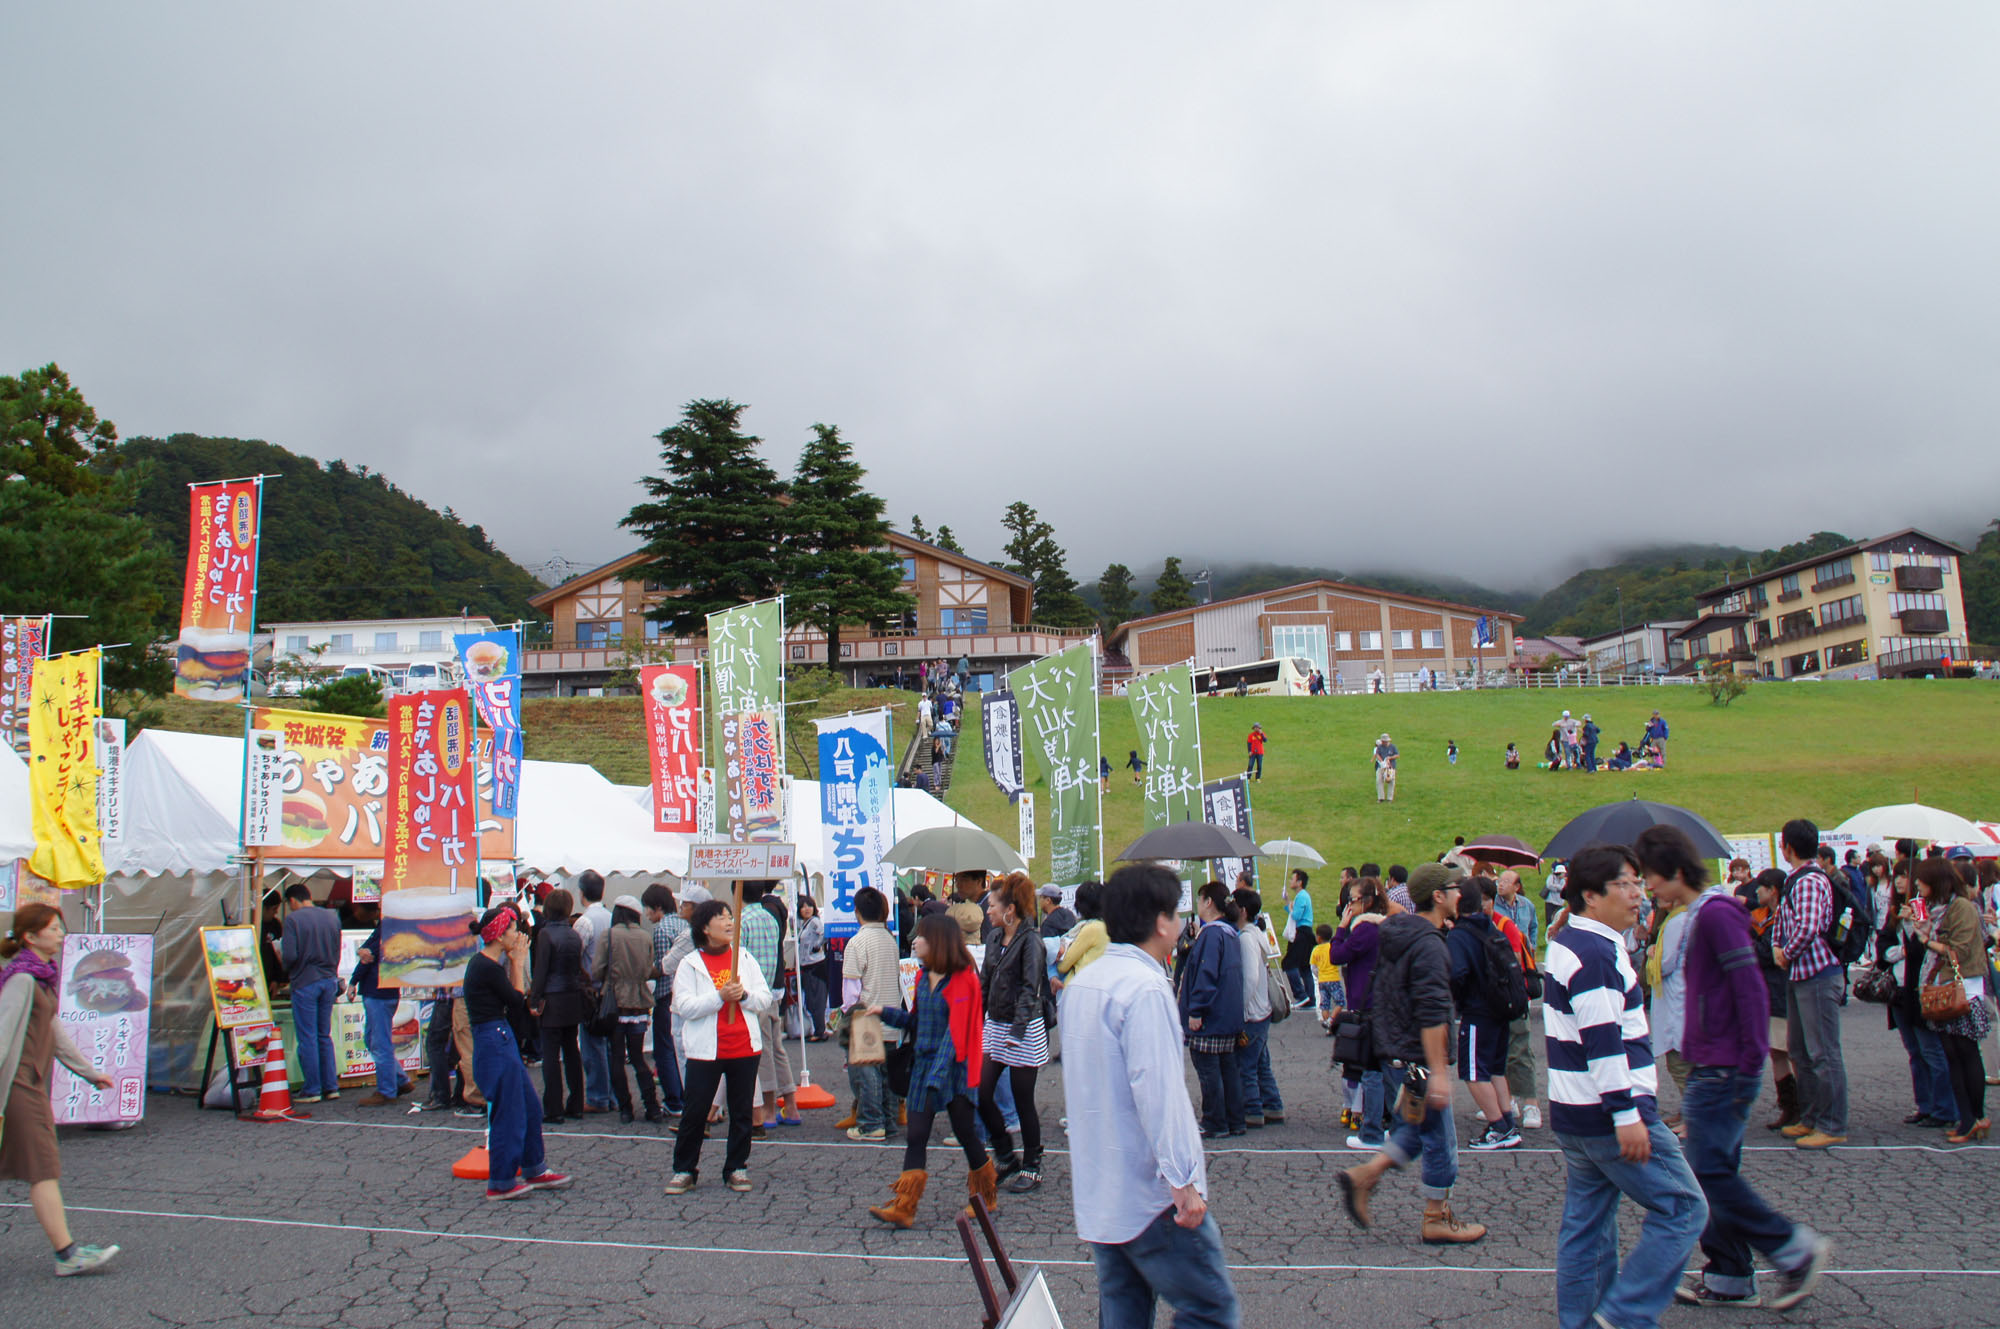 Burger time: People gather to taste the fare at the Tottori Burger Festa.